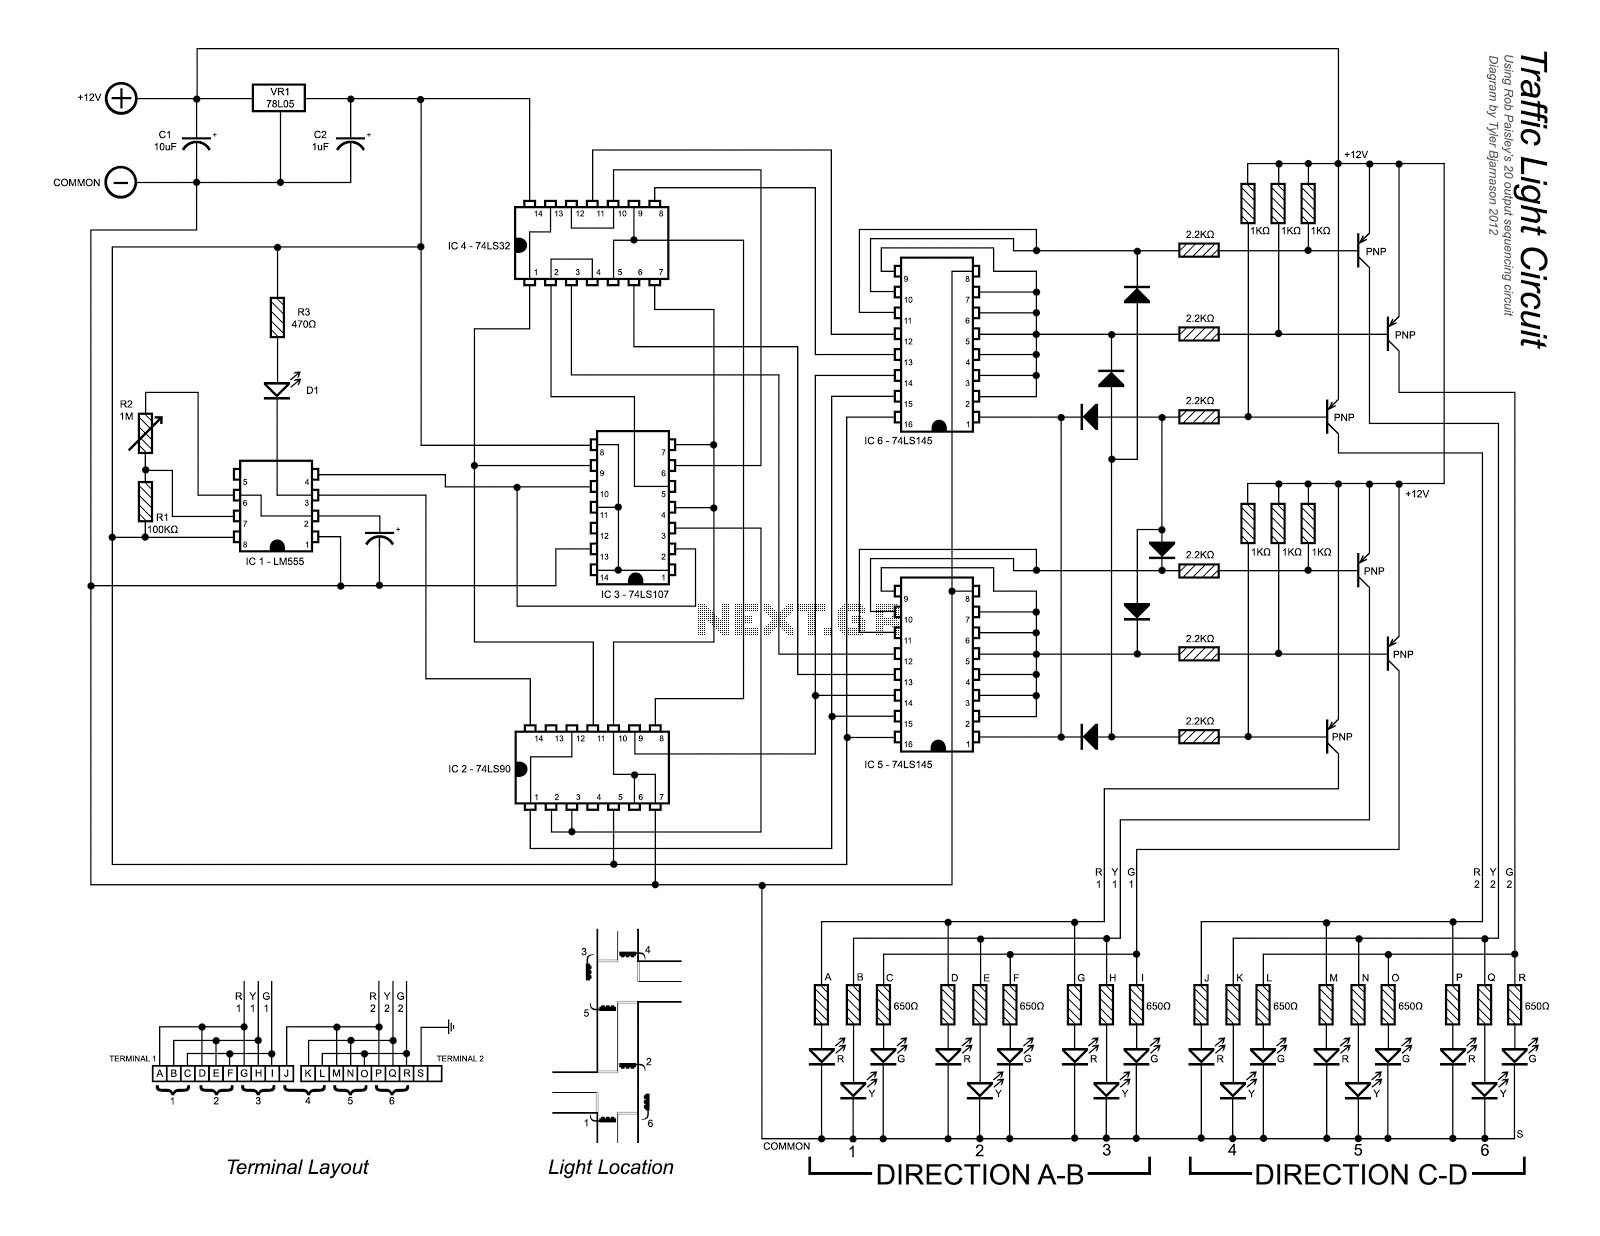 to the circuit schematic under repository-circuits